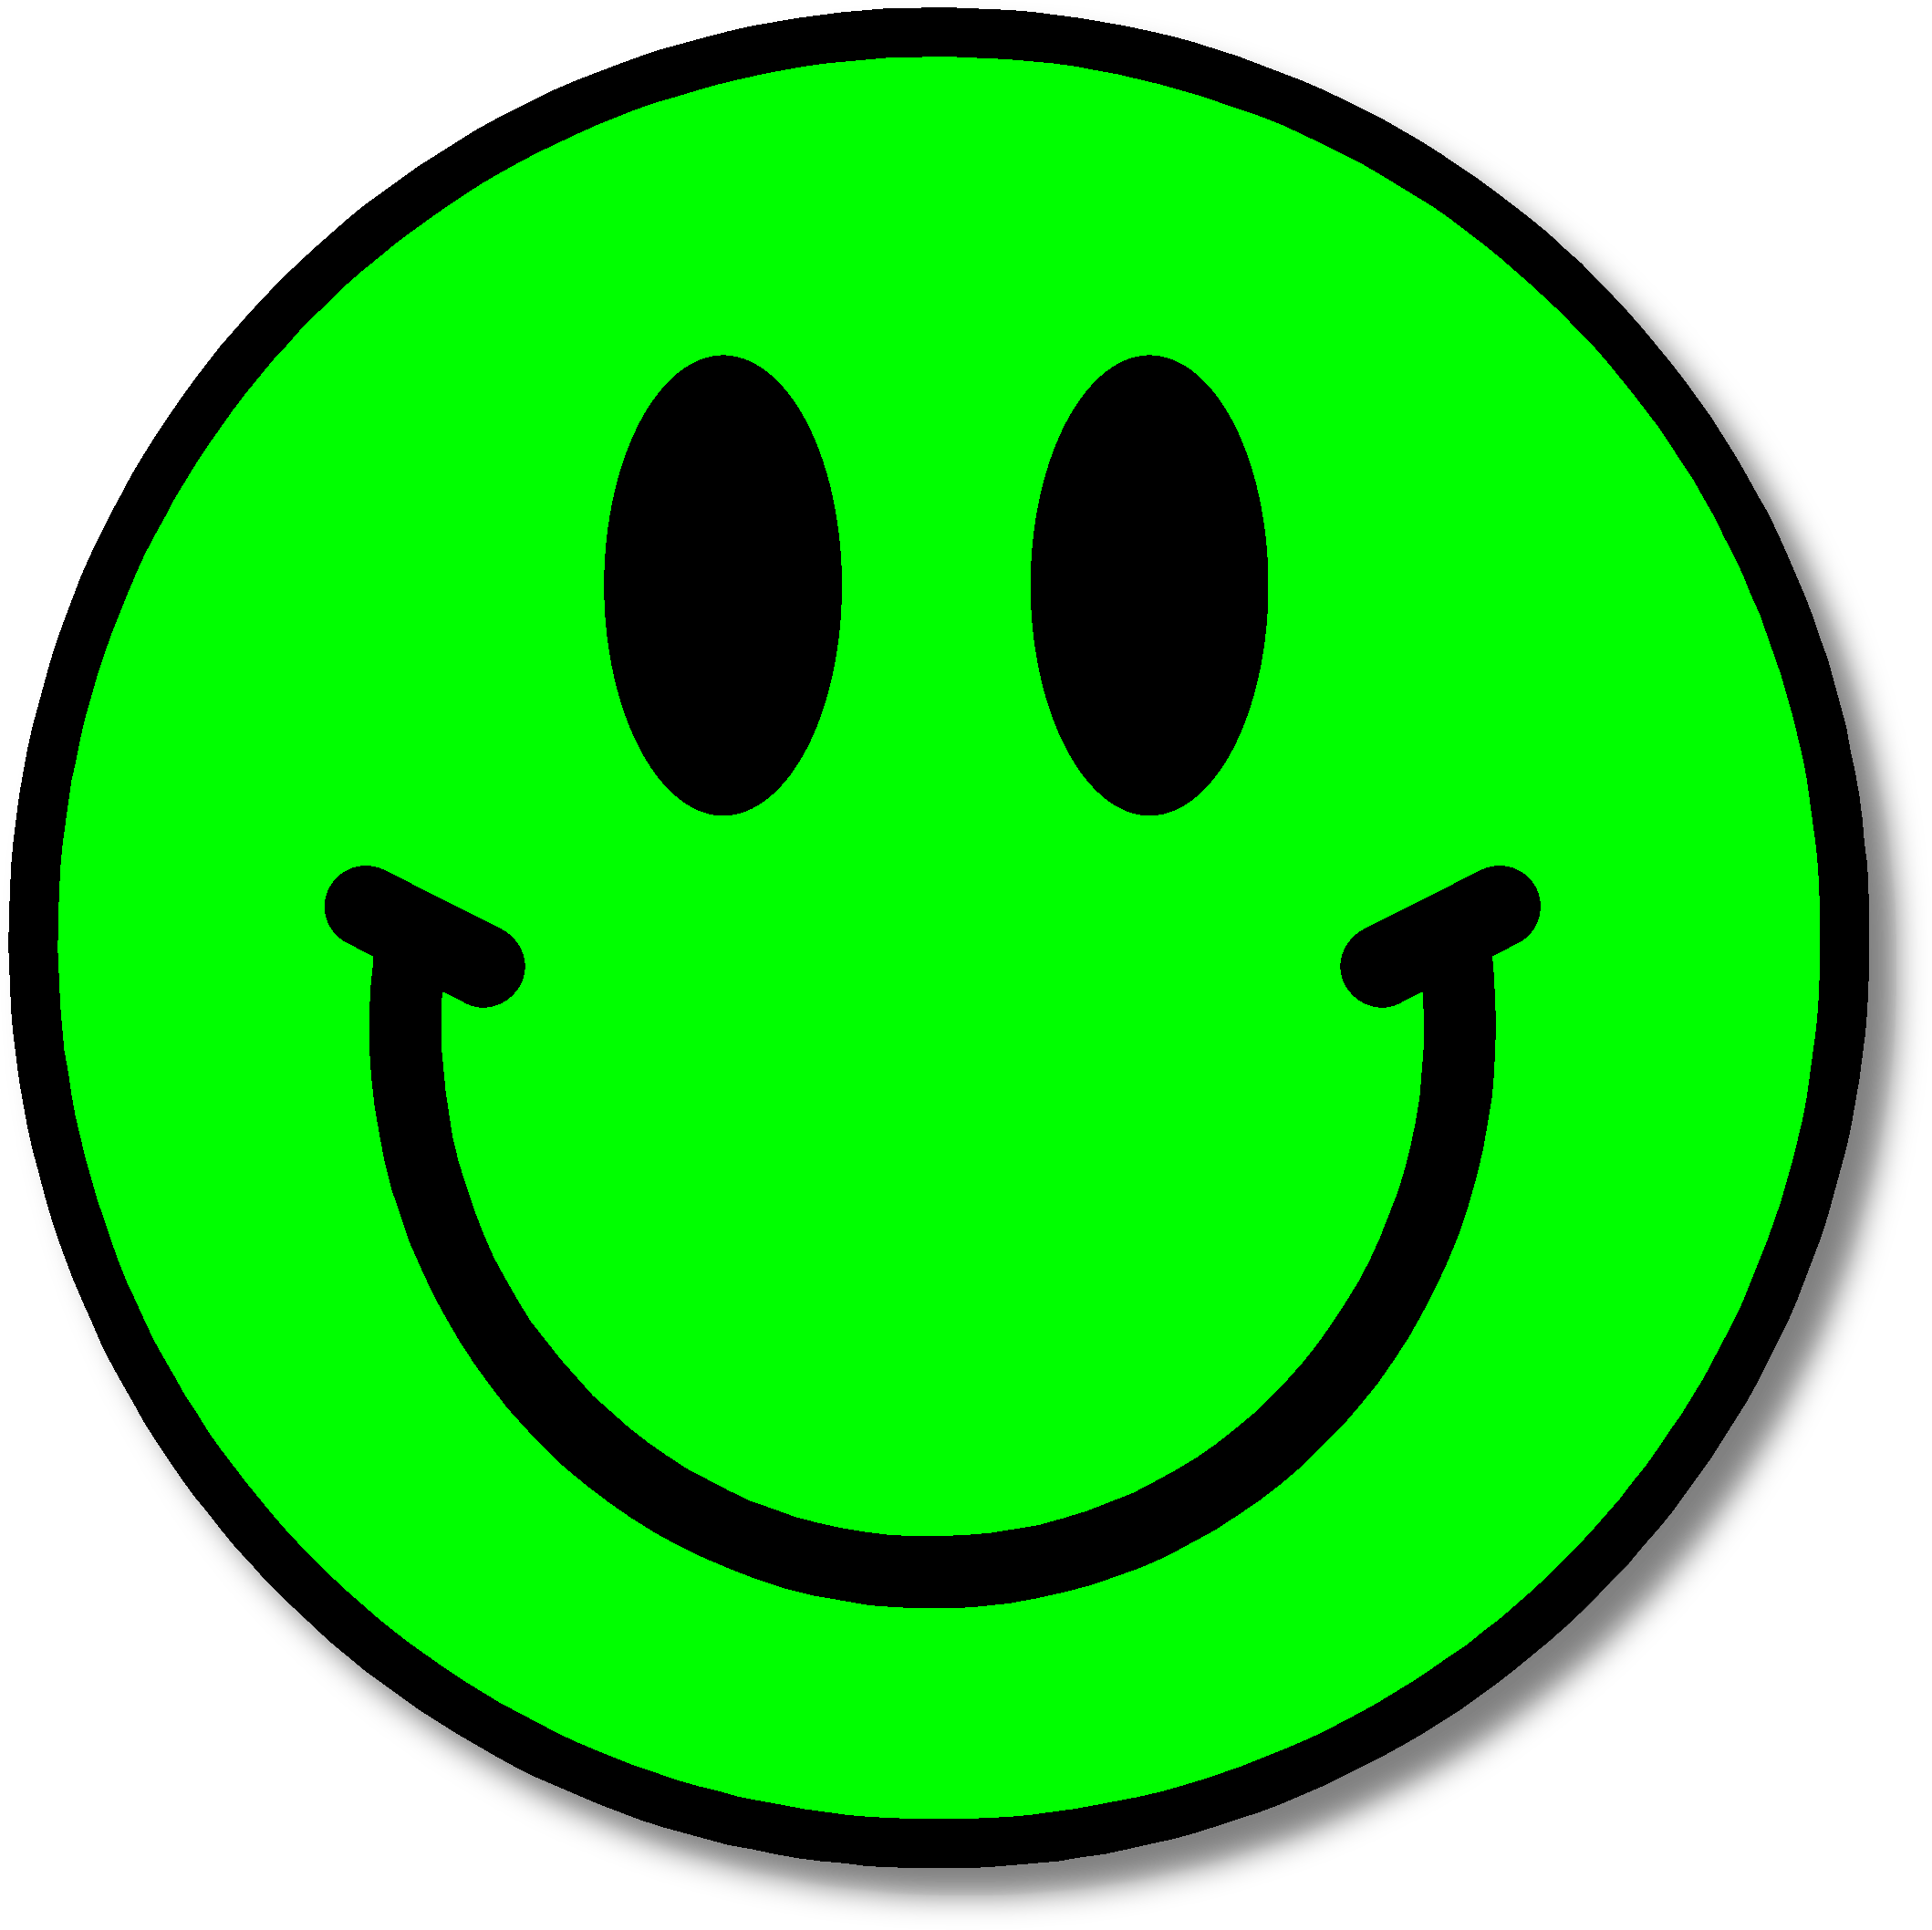 Smiley Face Thumbs Up Png   Clipart Panda - Free Clipart ... - Happy Smiley Face Cartoon